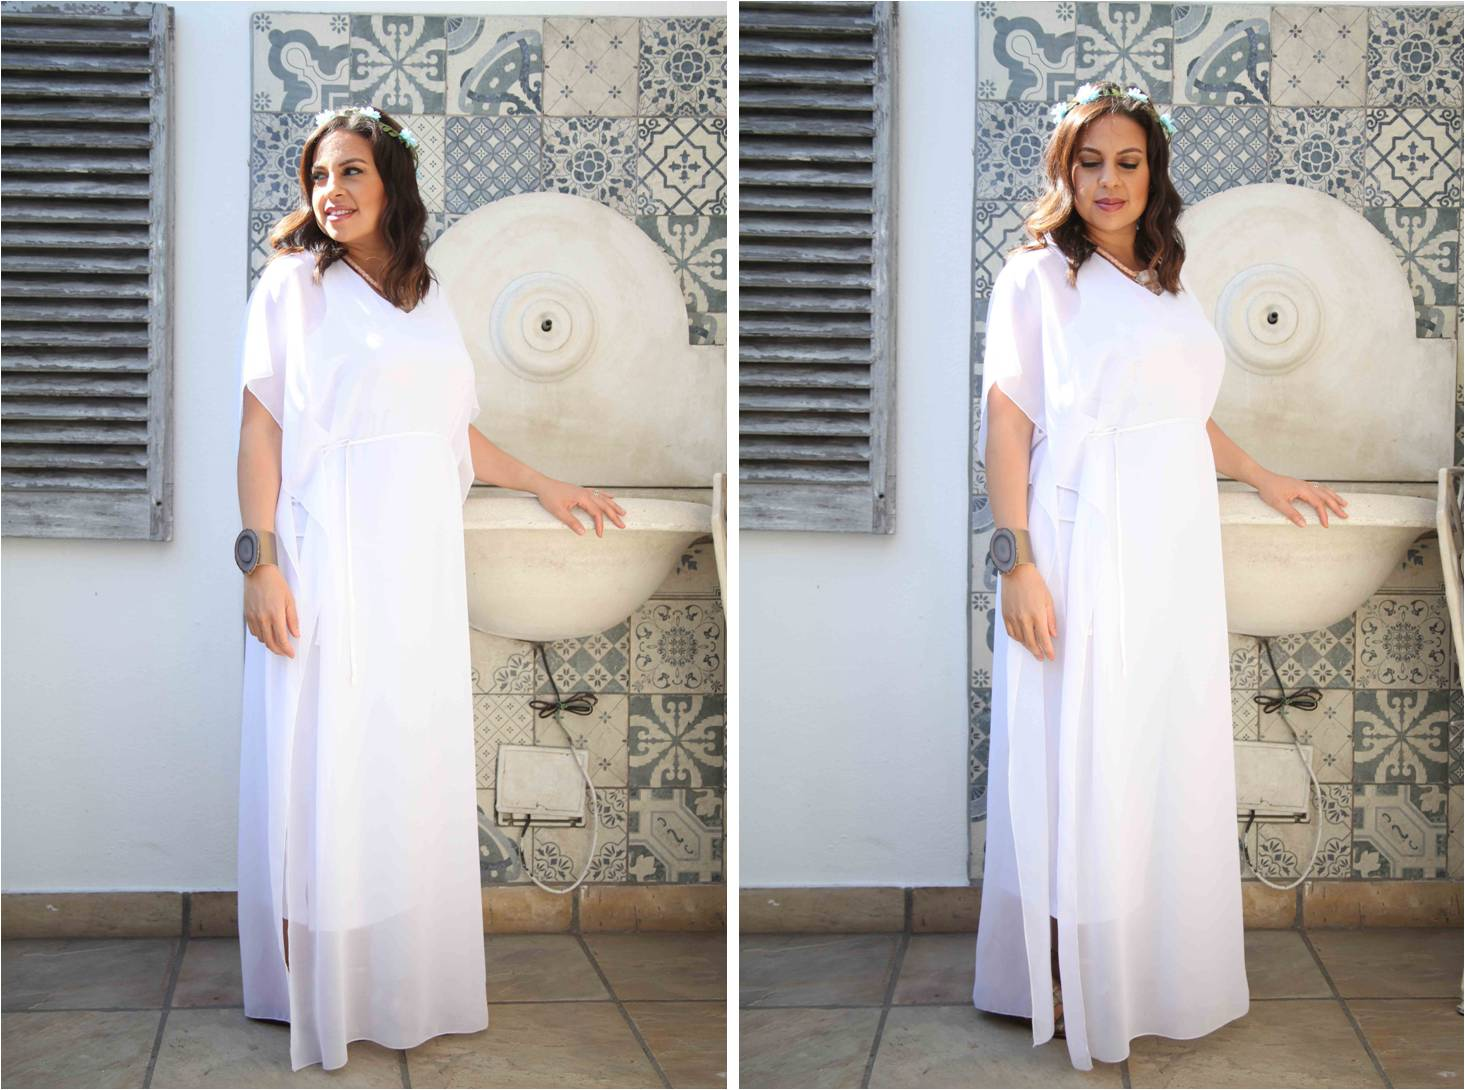 Fabufit | Preggie Style: My Baby Shower Look